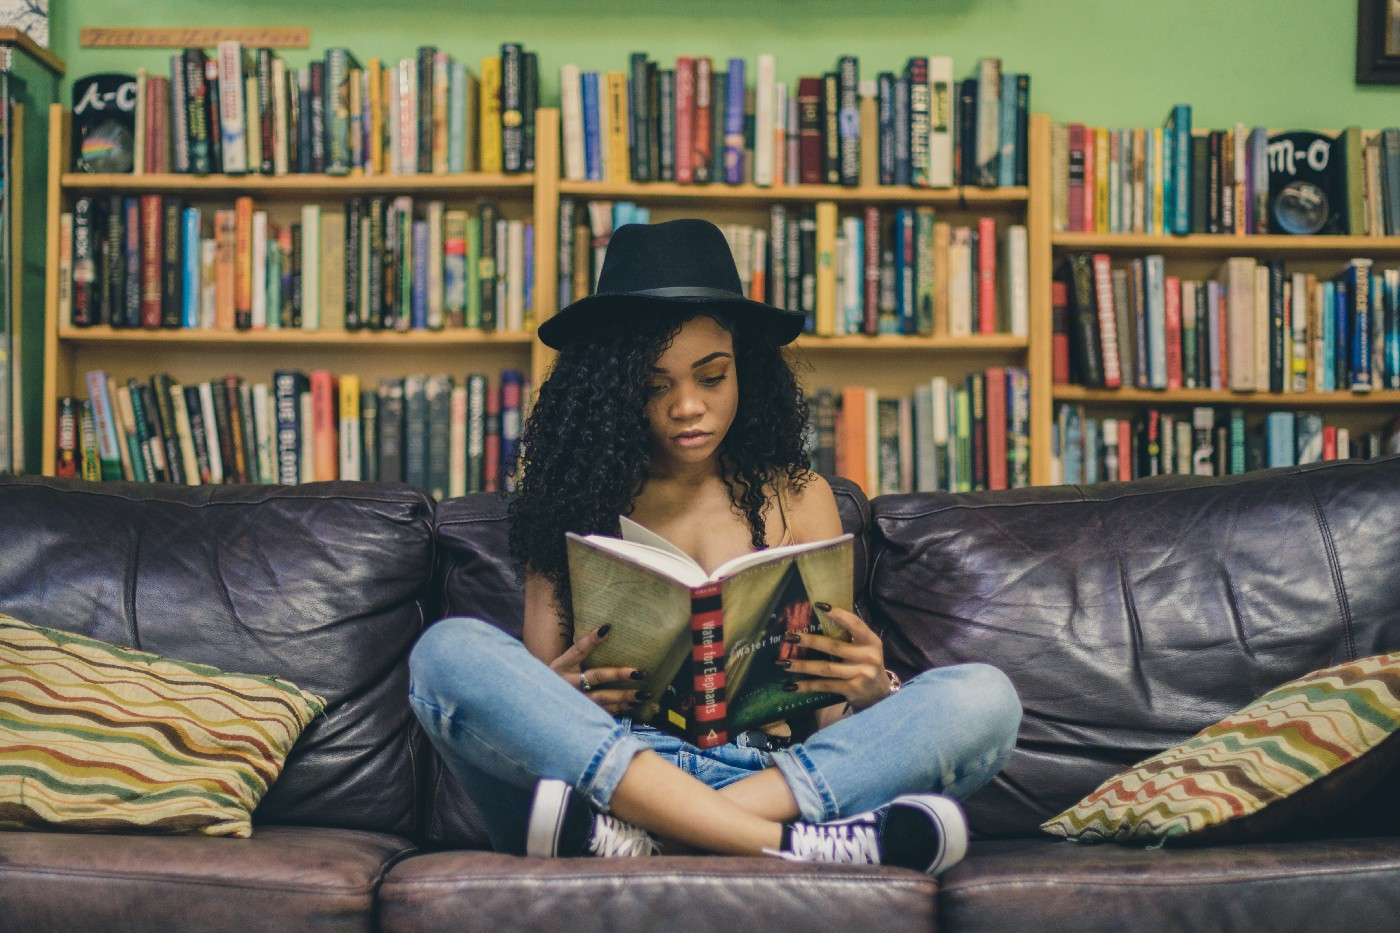 A black woman wearing a black hat reads a book in a library.